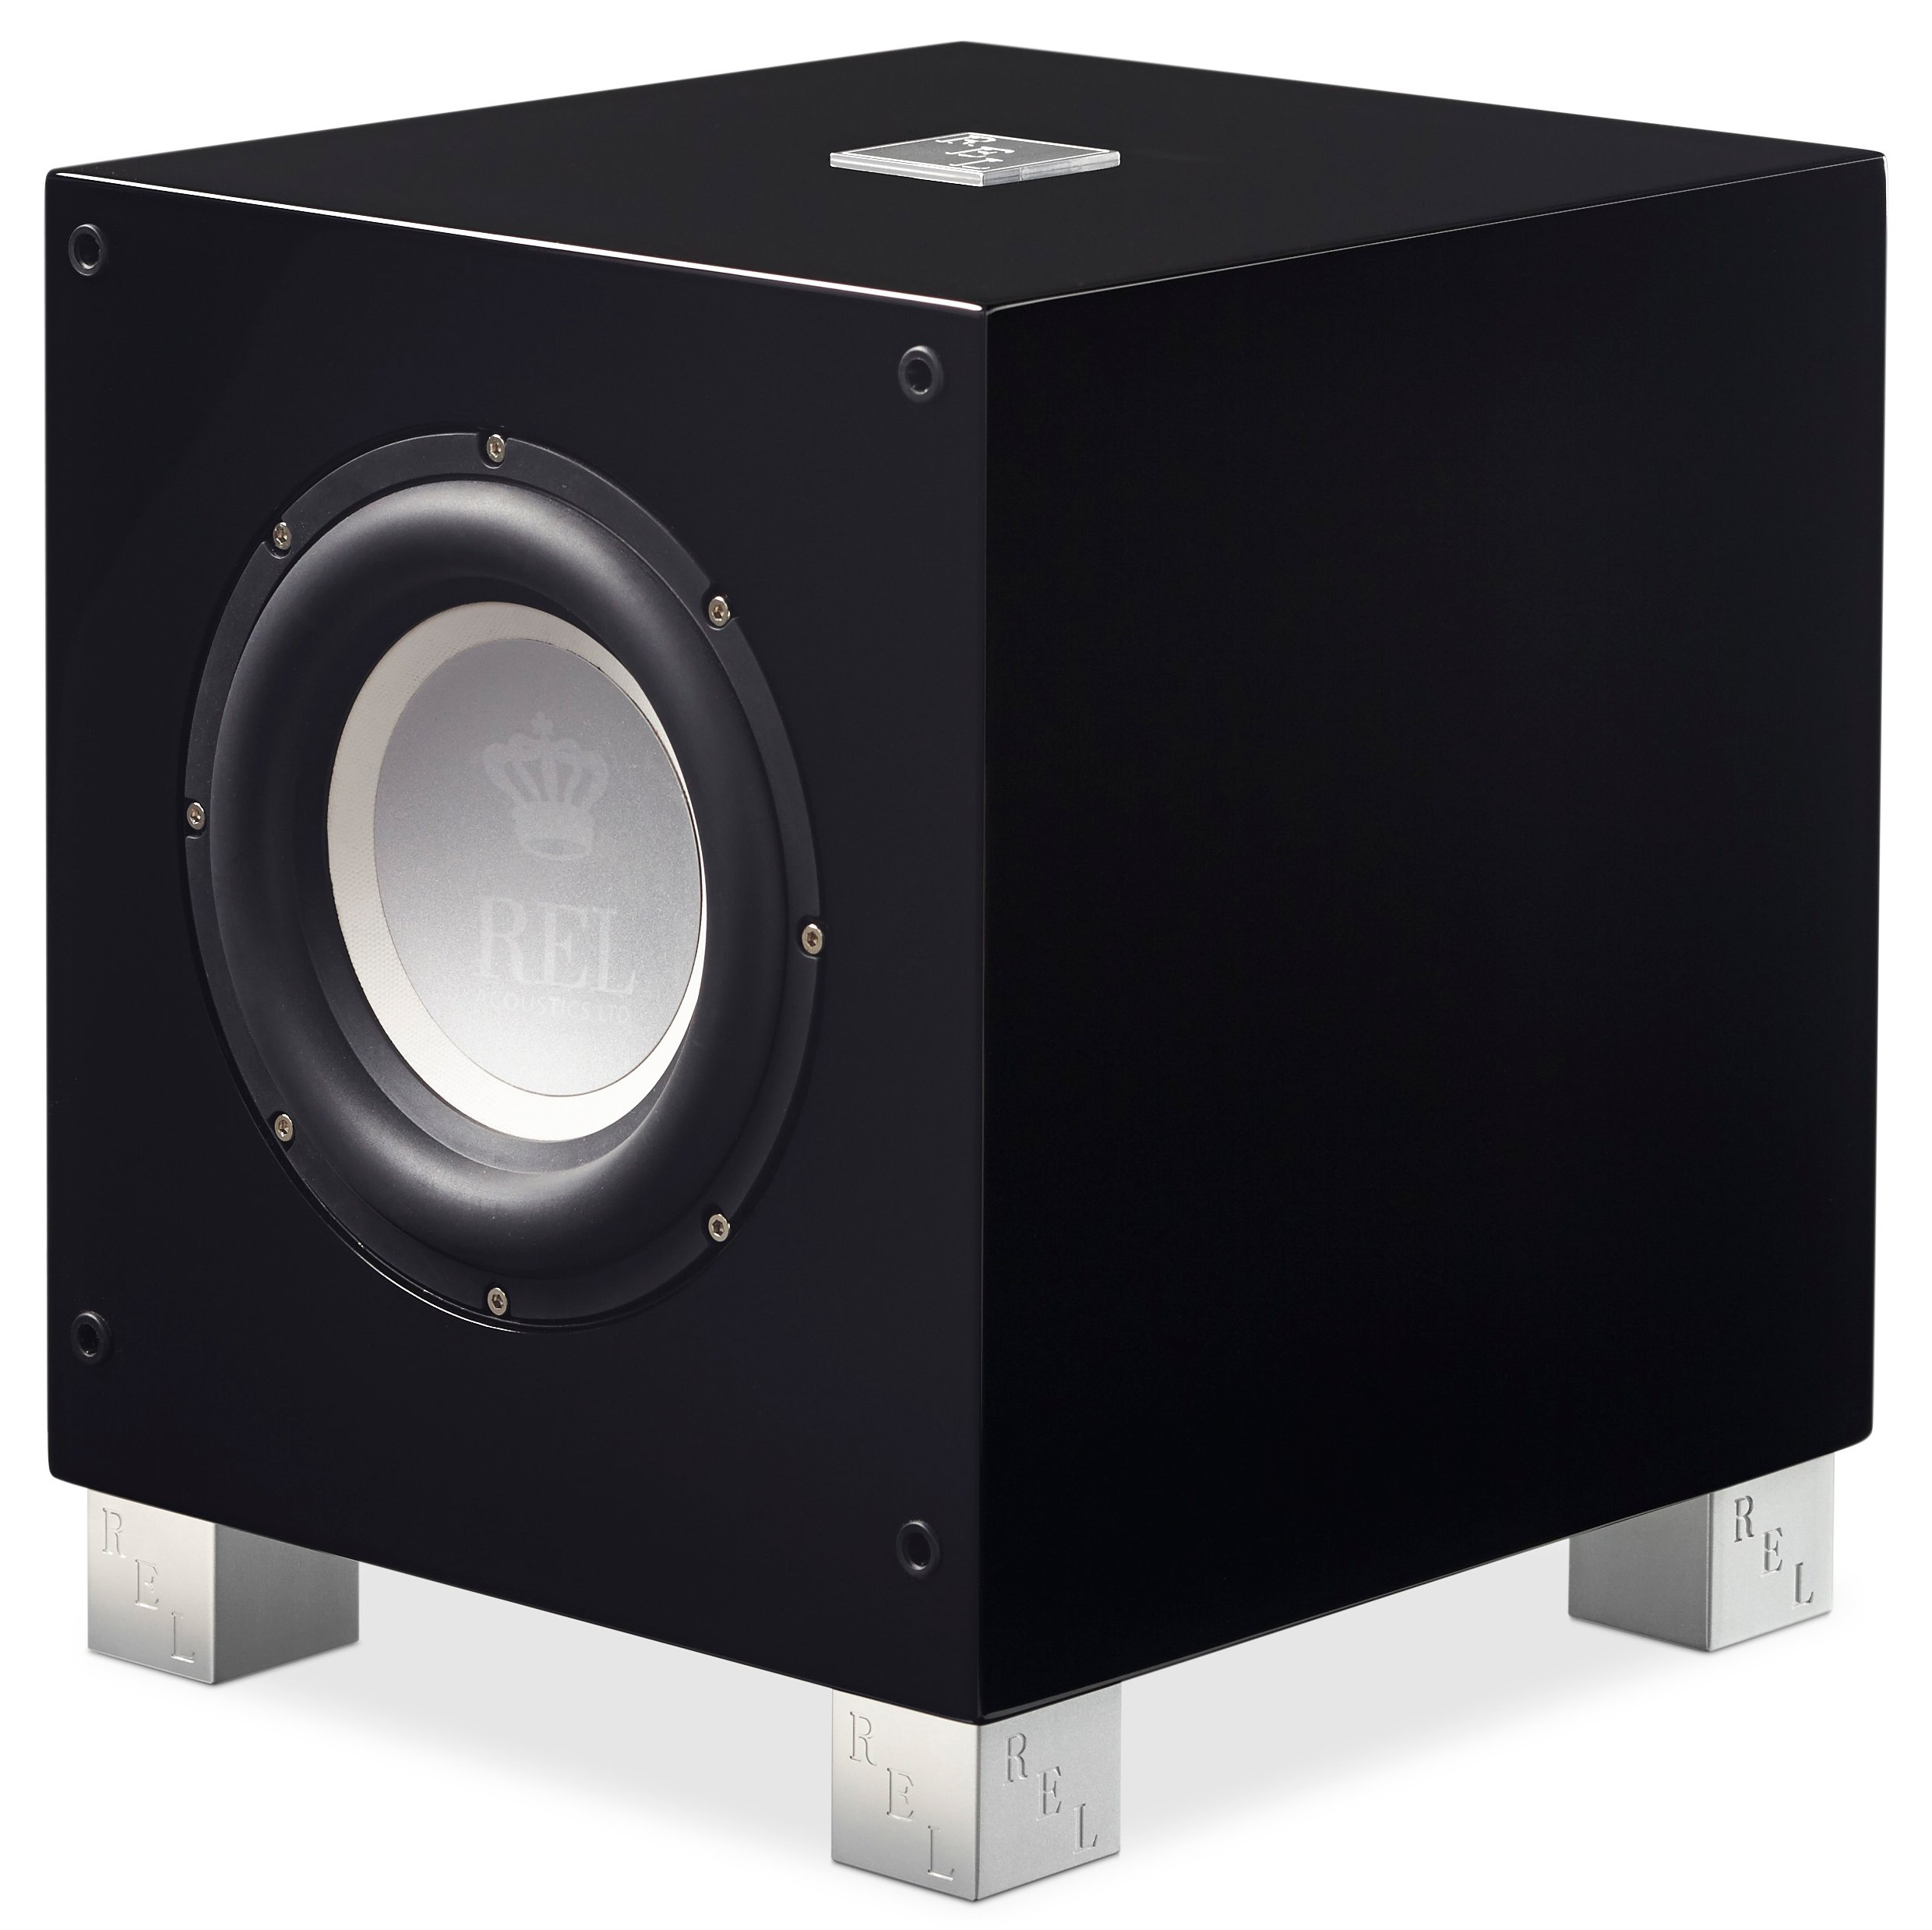 REL Acoustics T/7i Subwoofer, 8 inch Front-Firing Driver, Arrow wireless port, High Gloss Black by REL Acoustics